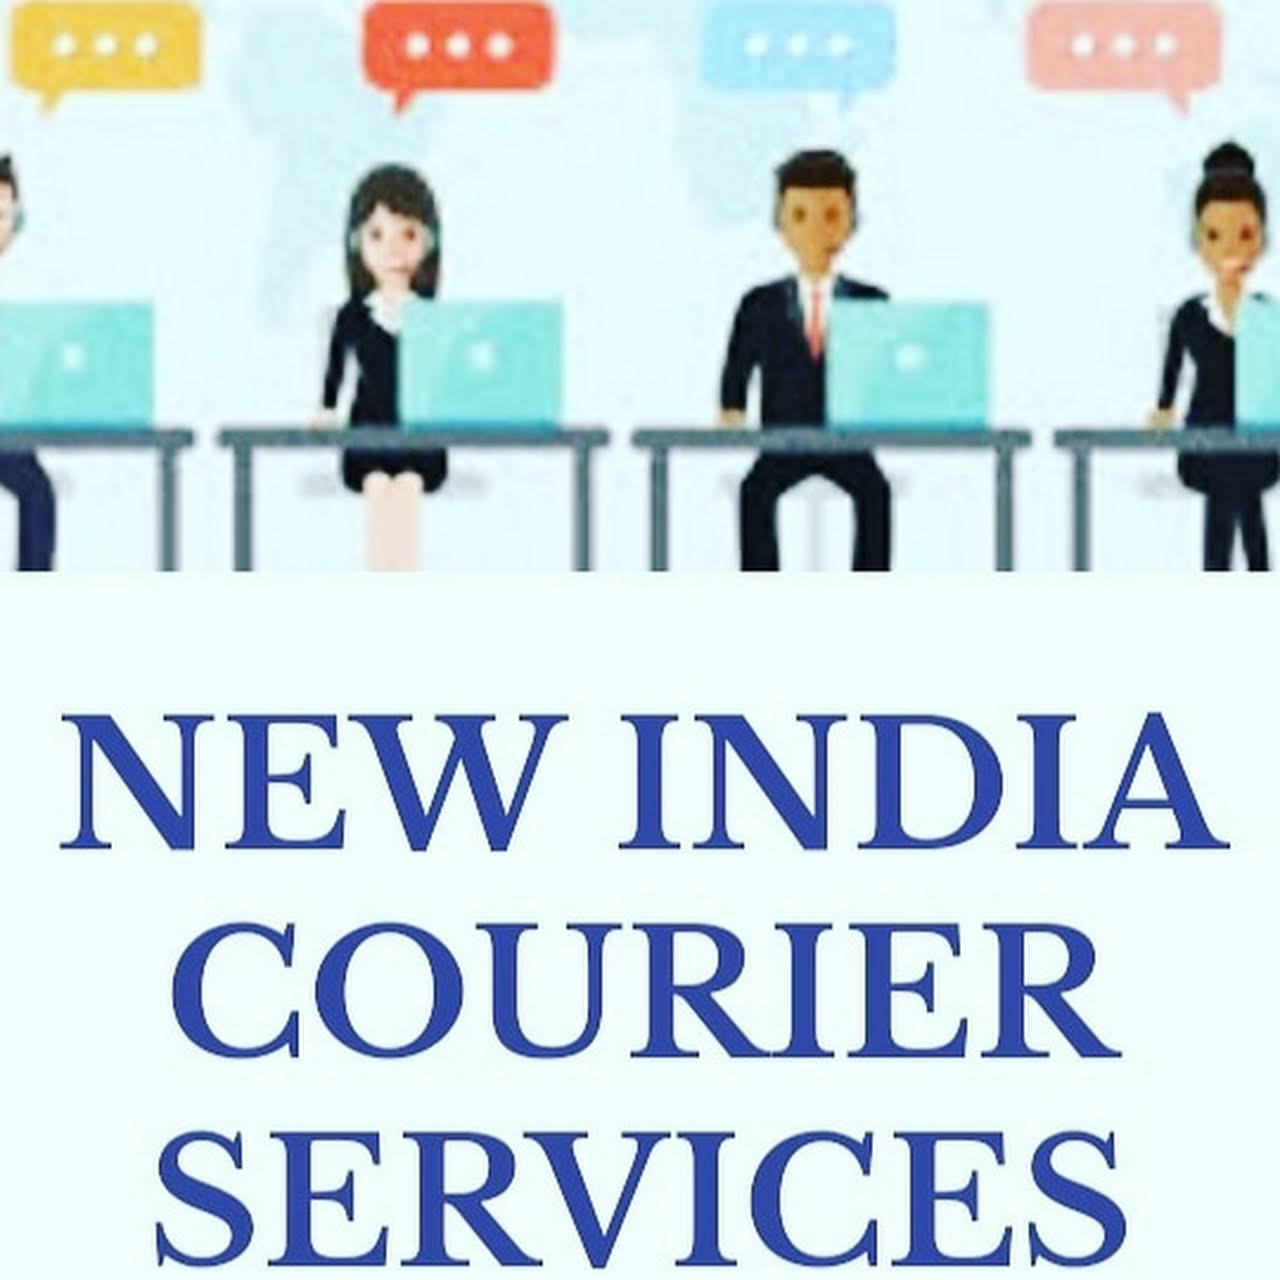 NEW INDIA COURIER SERVICES - Courier Service in Surat